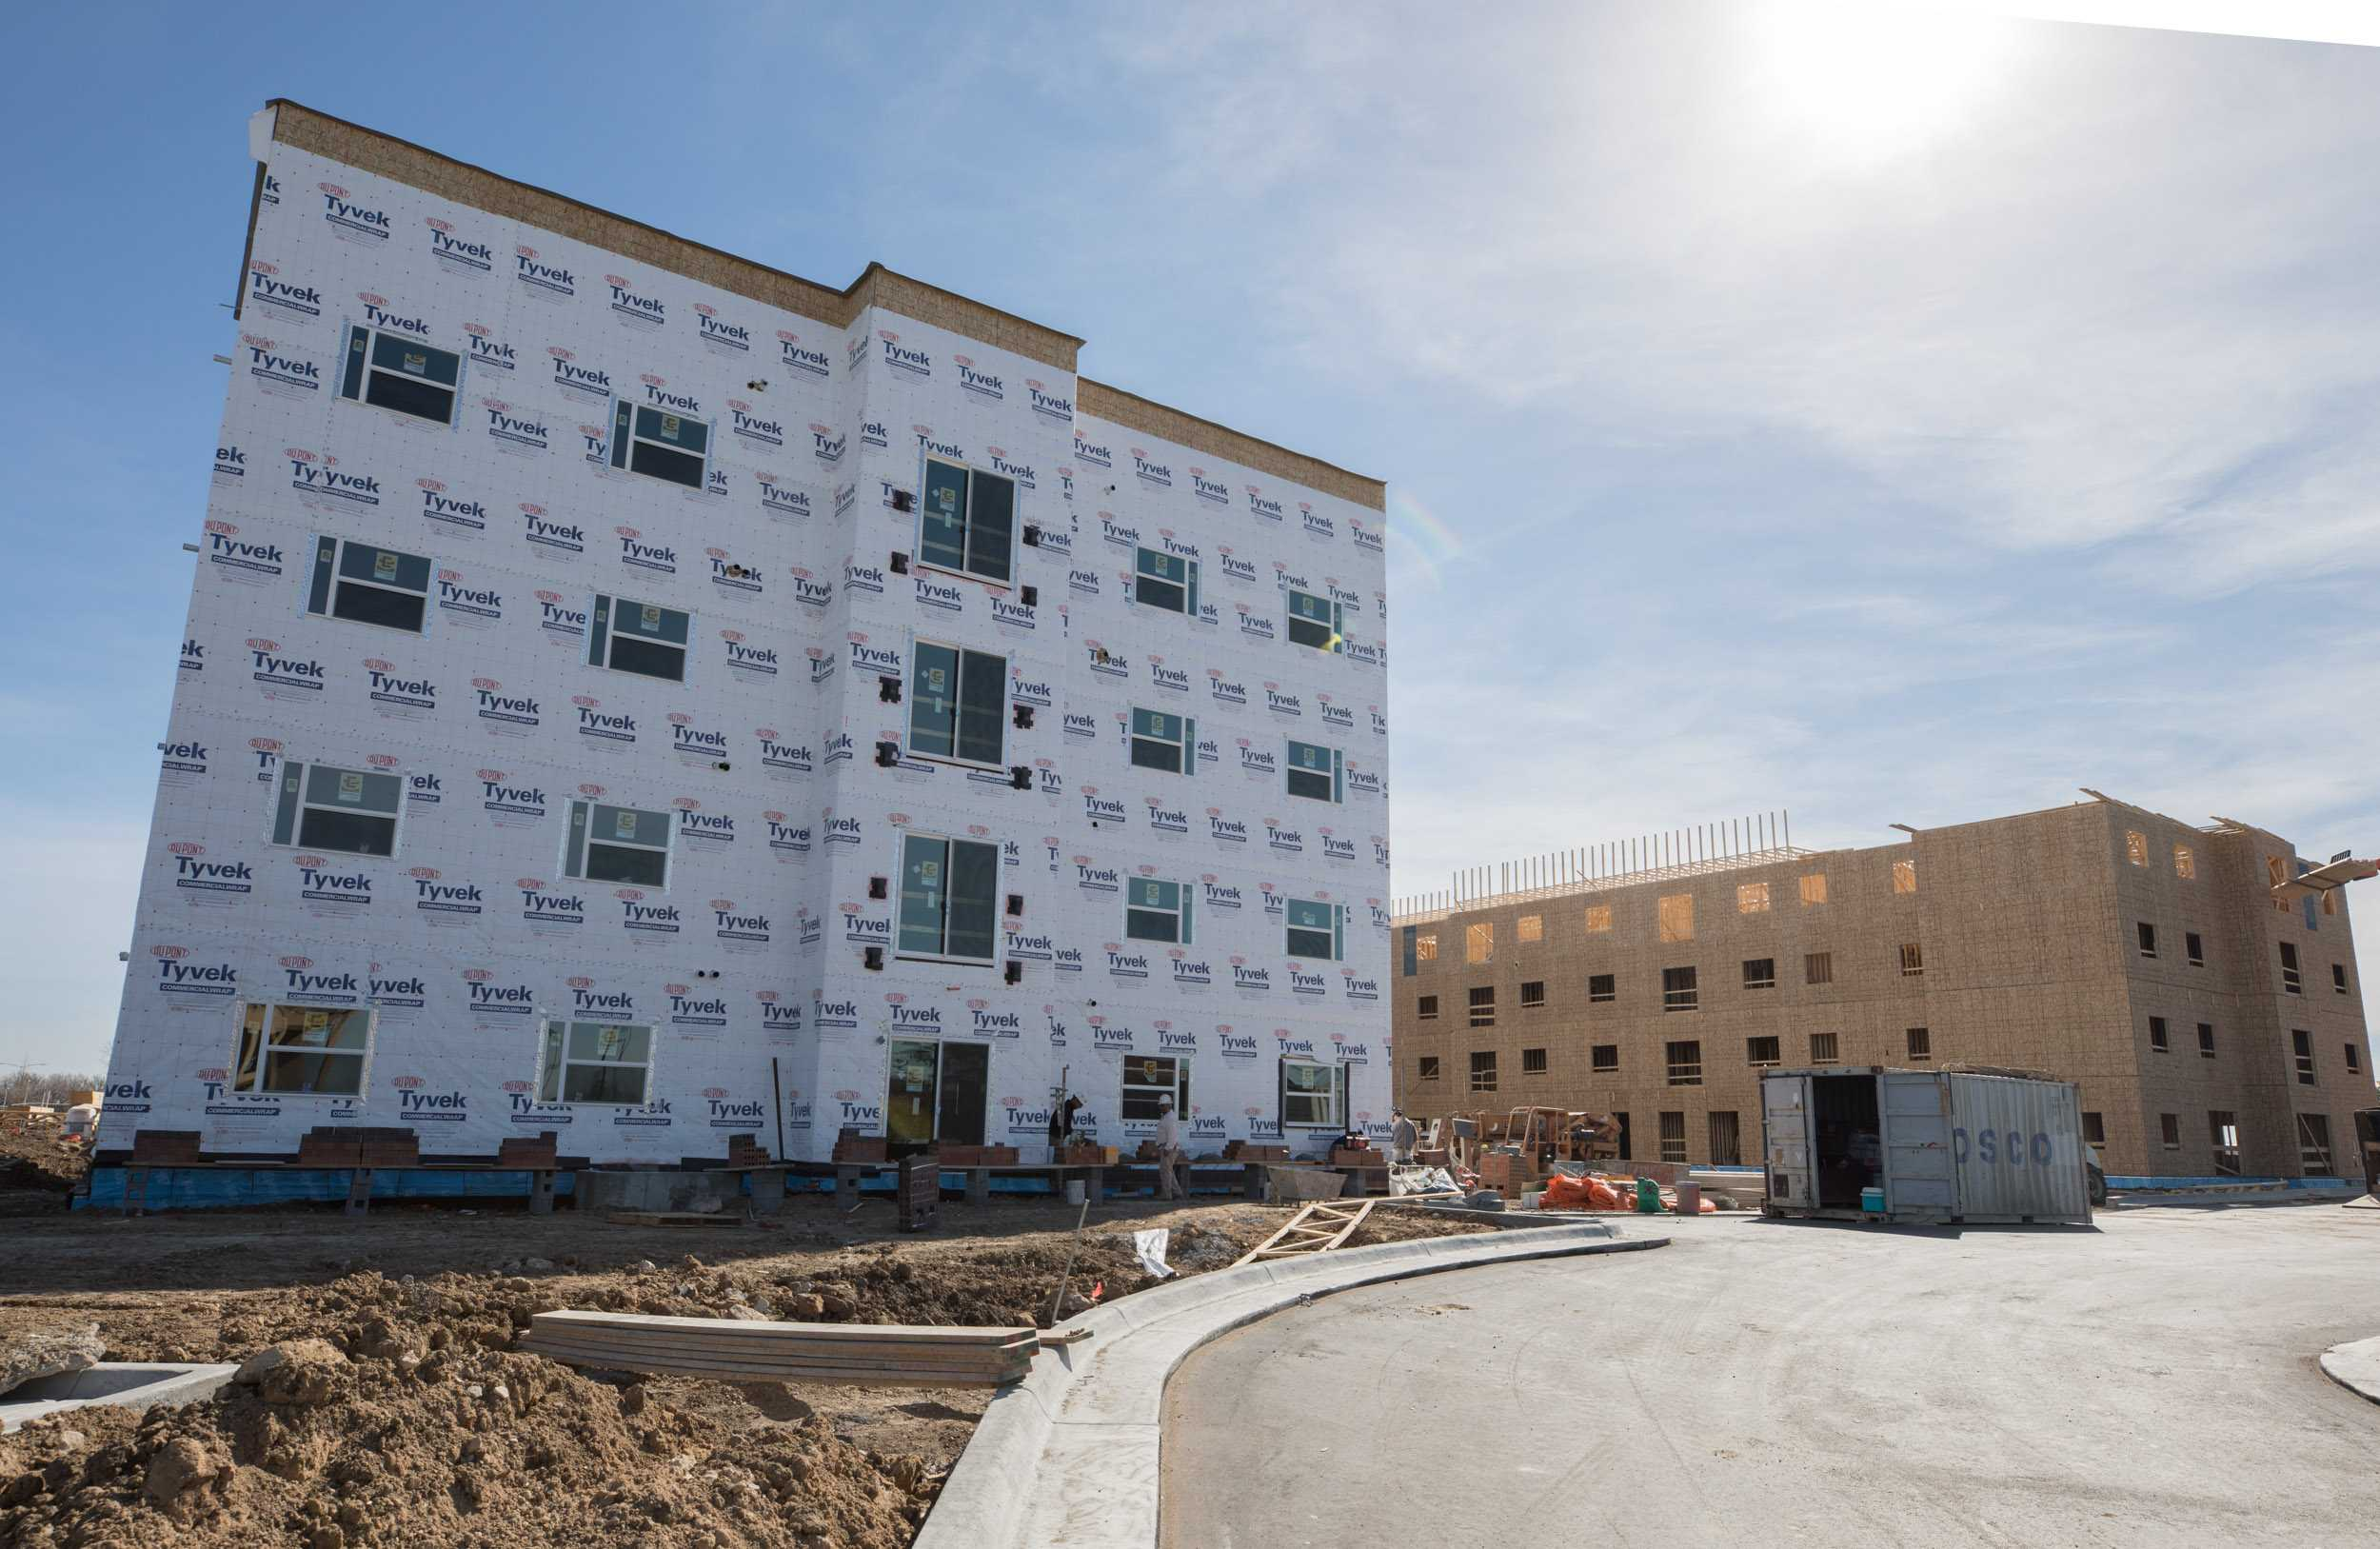 Construction of the new Flats at WSU continues on Feb. 10, 2017. The new apartments, located on campus, will start at $939 for a one bedroom.